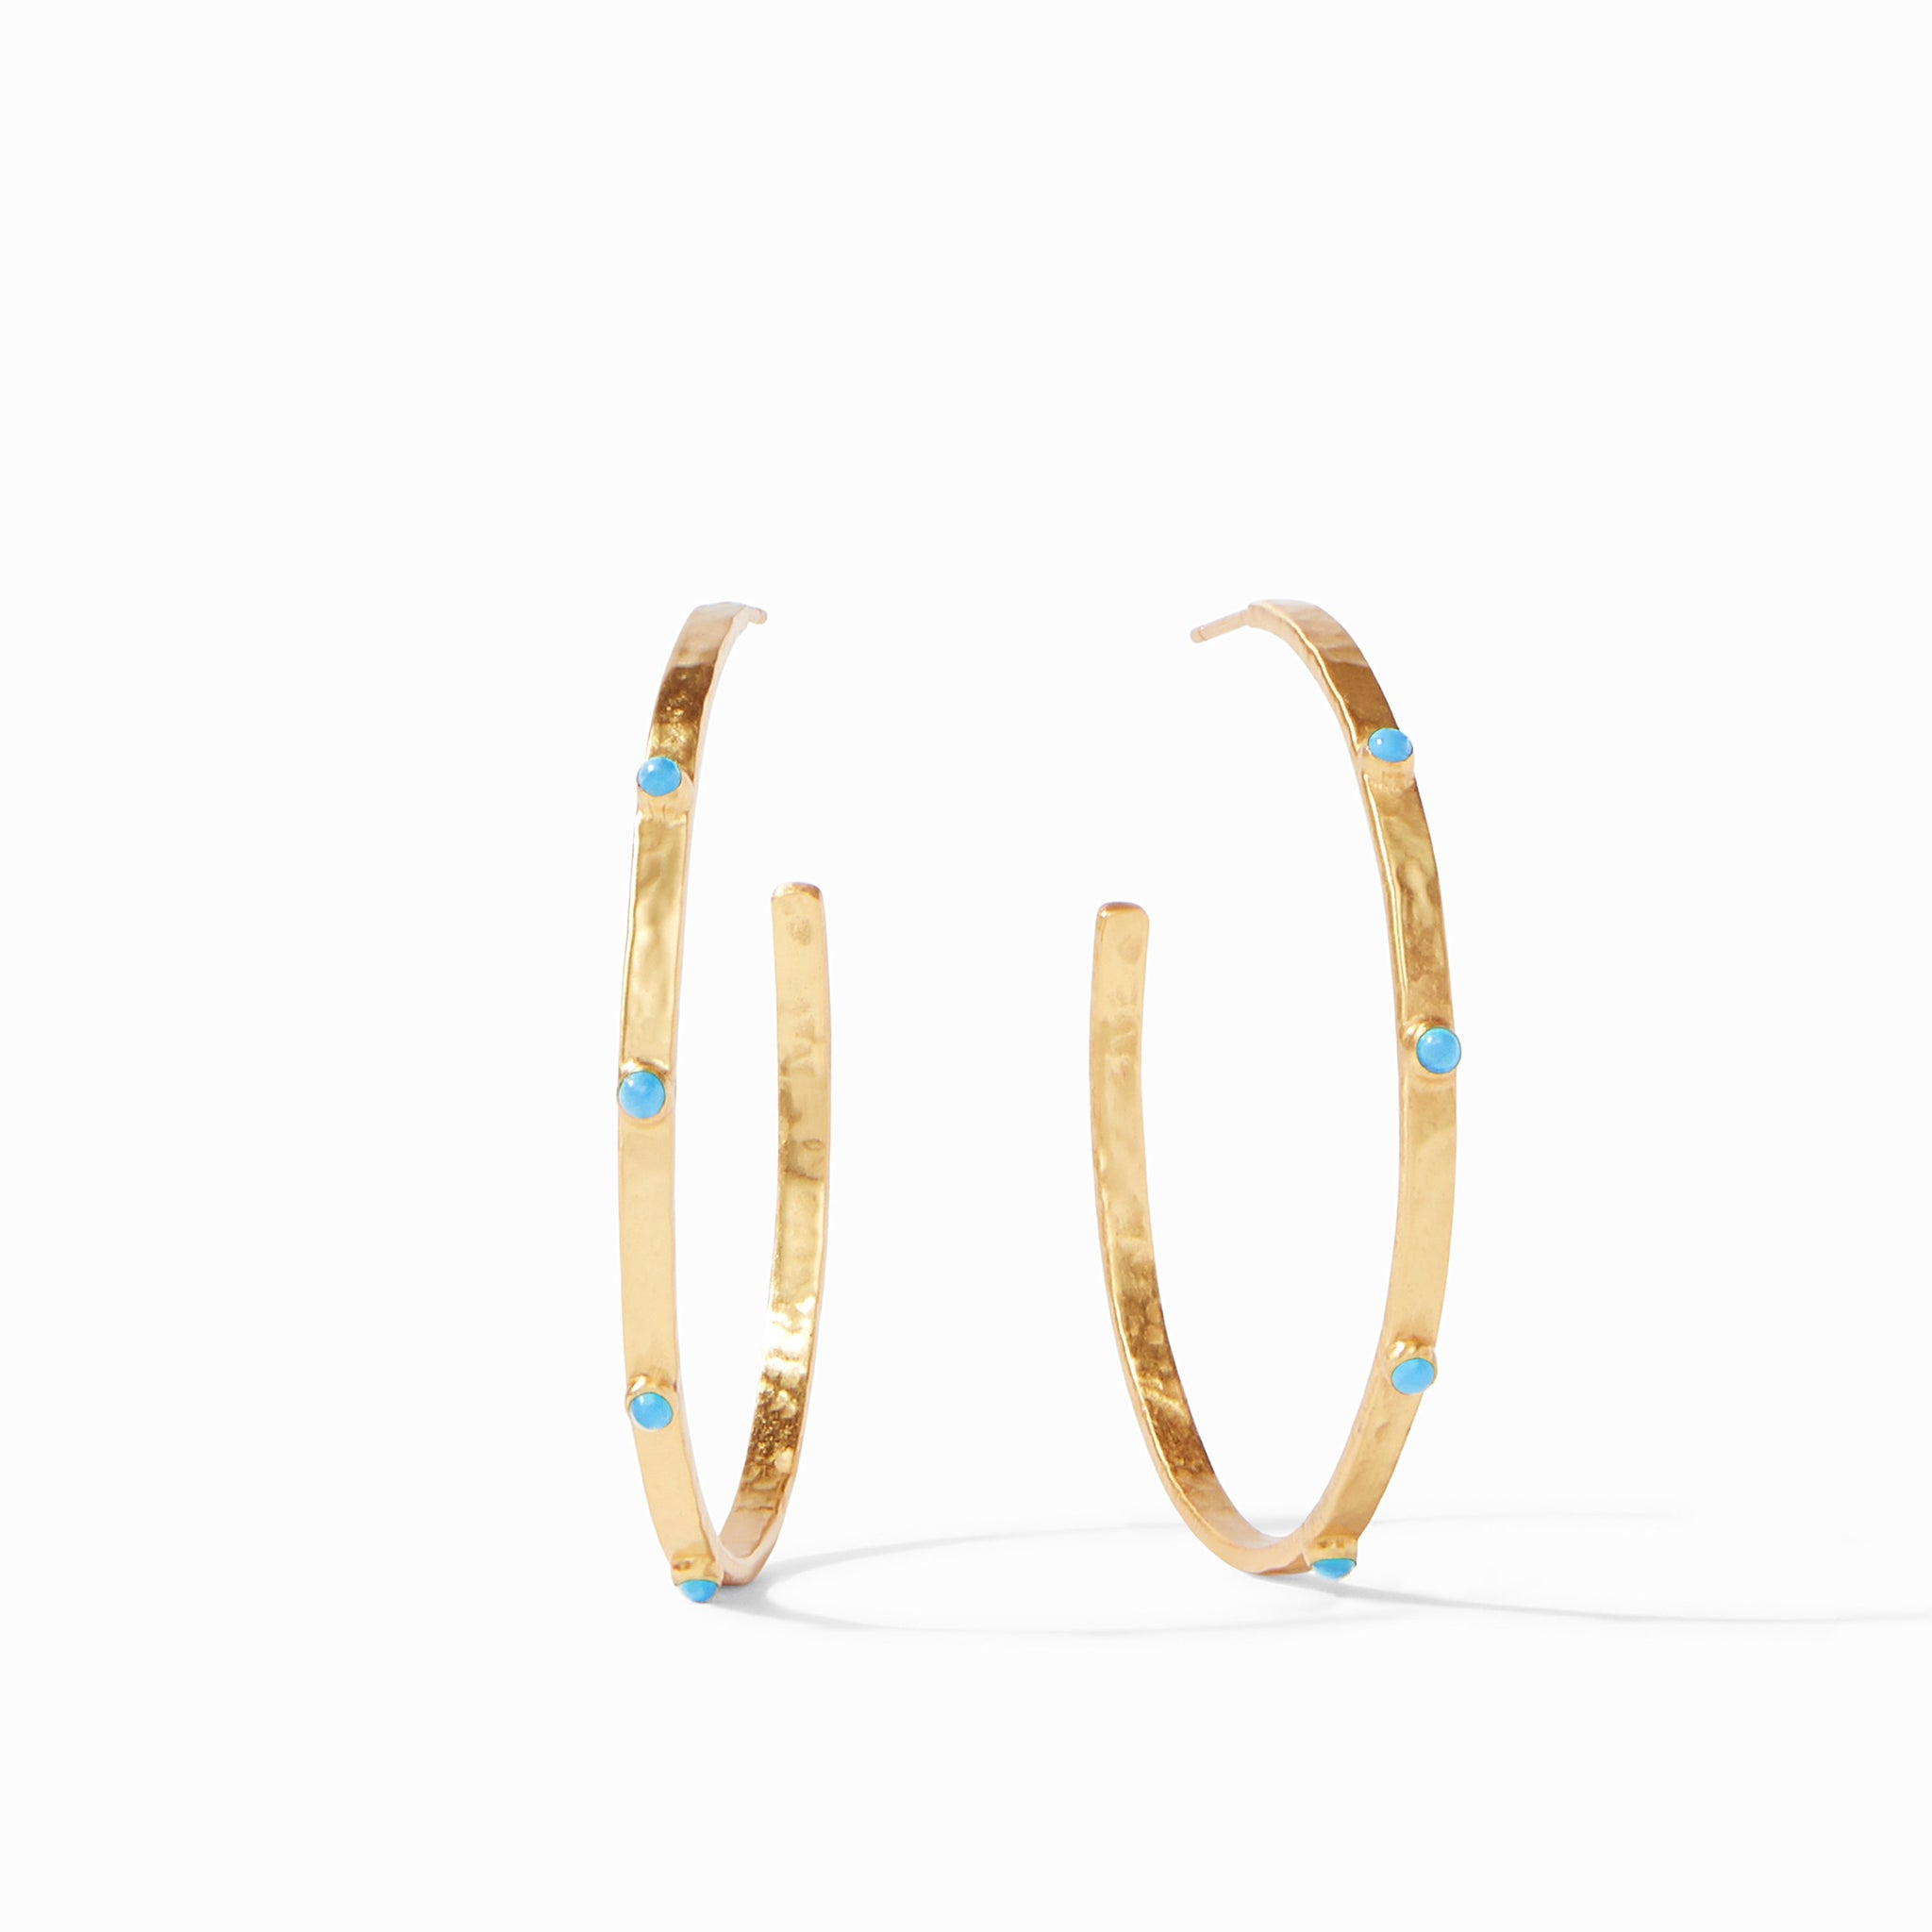 Pacific Blue, L, resort, aspen collection, New Spring Jewels, into the blue, new for spring, into the blues